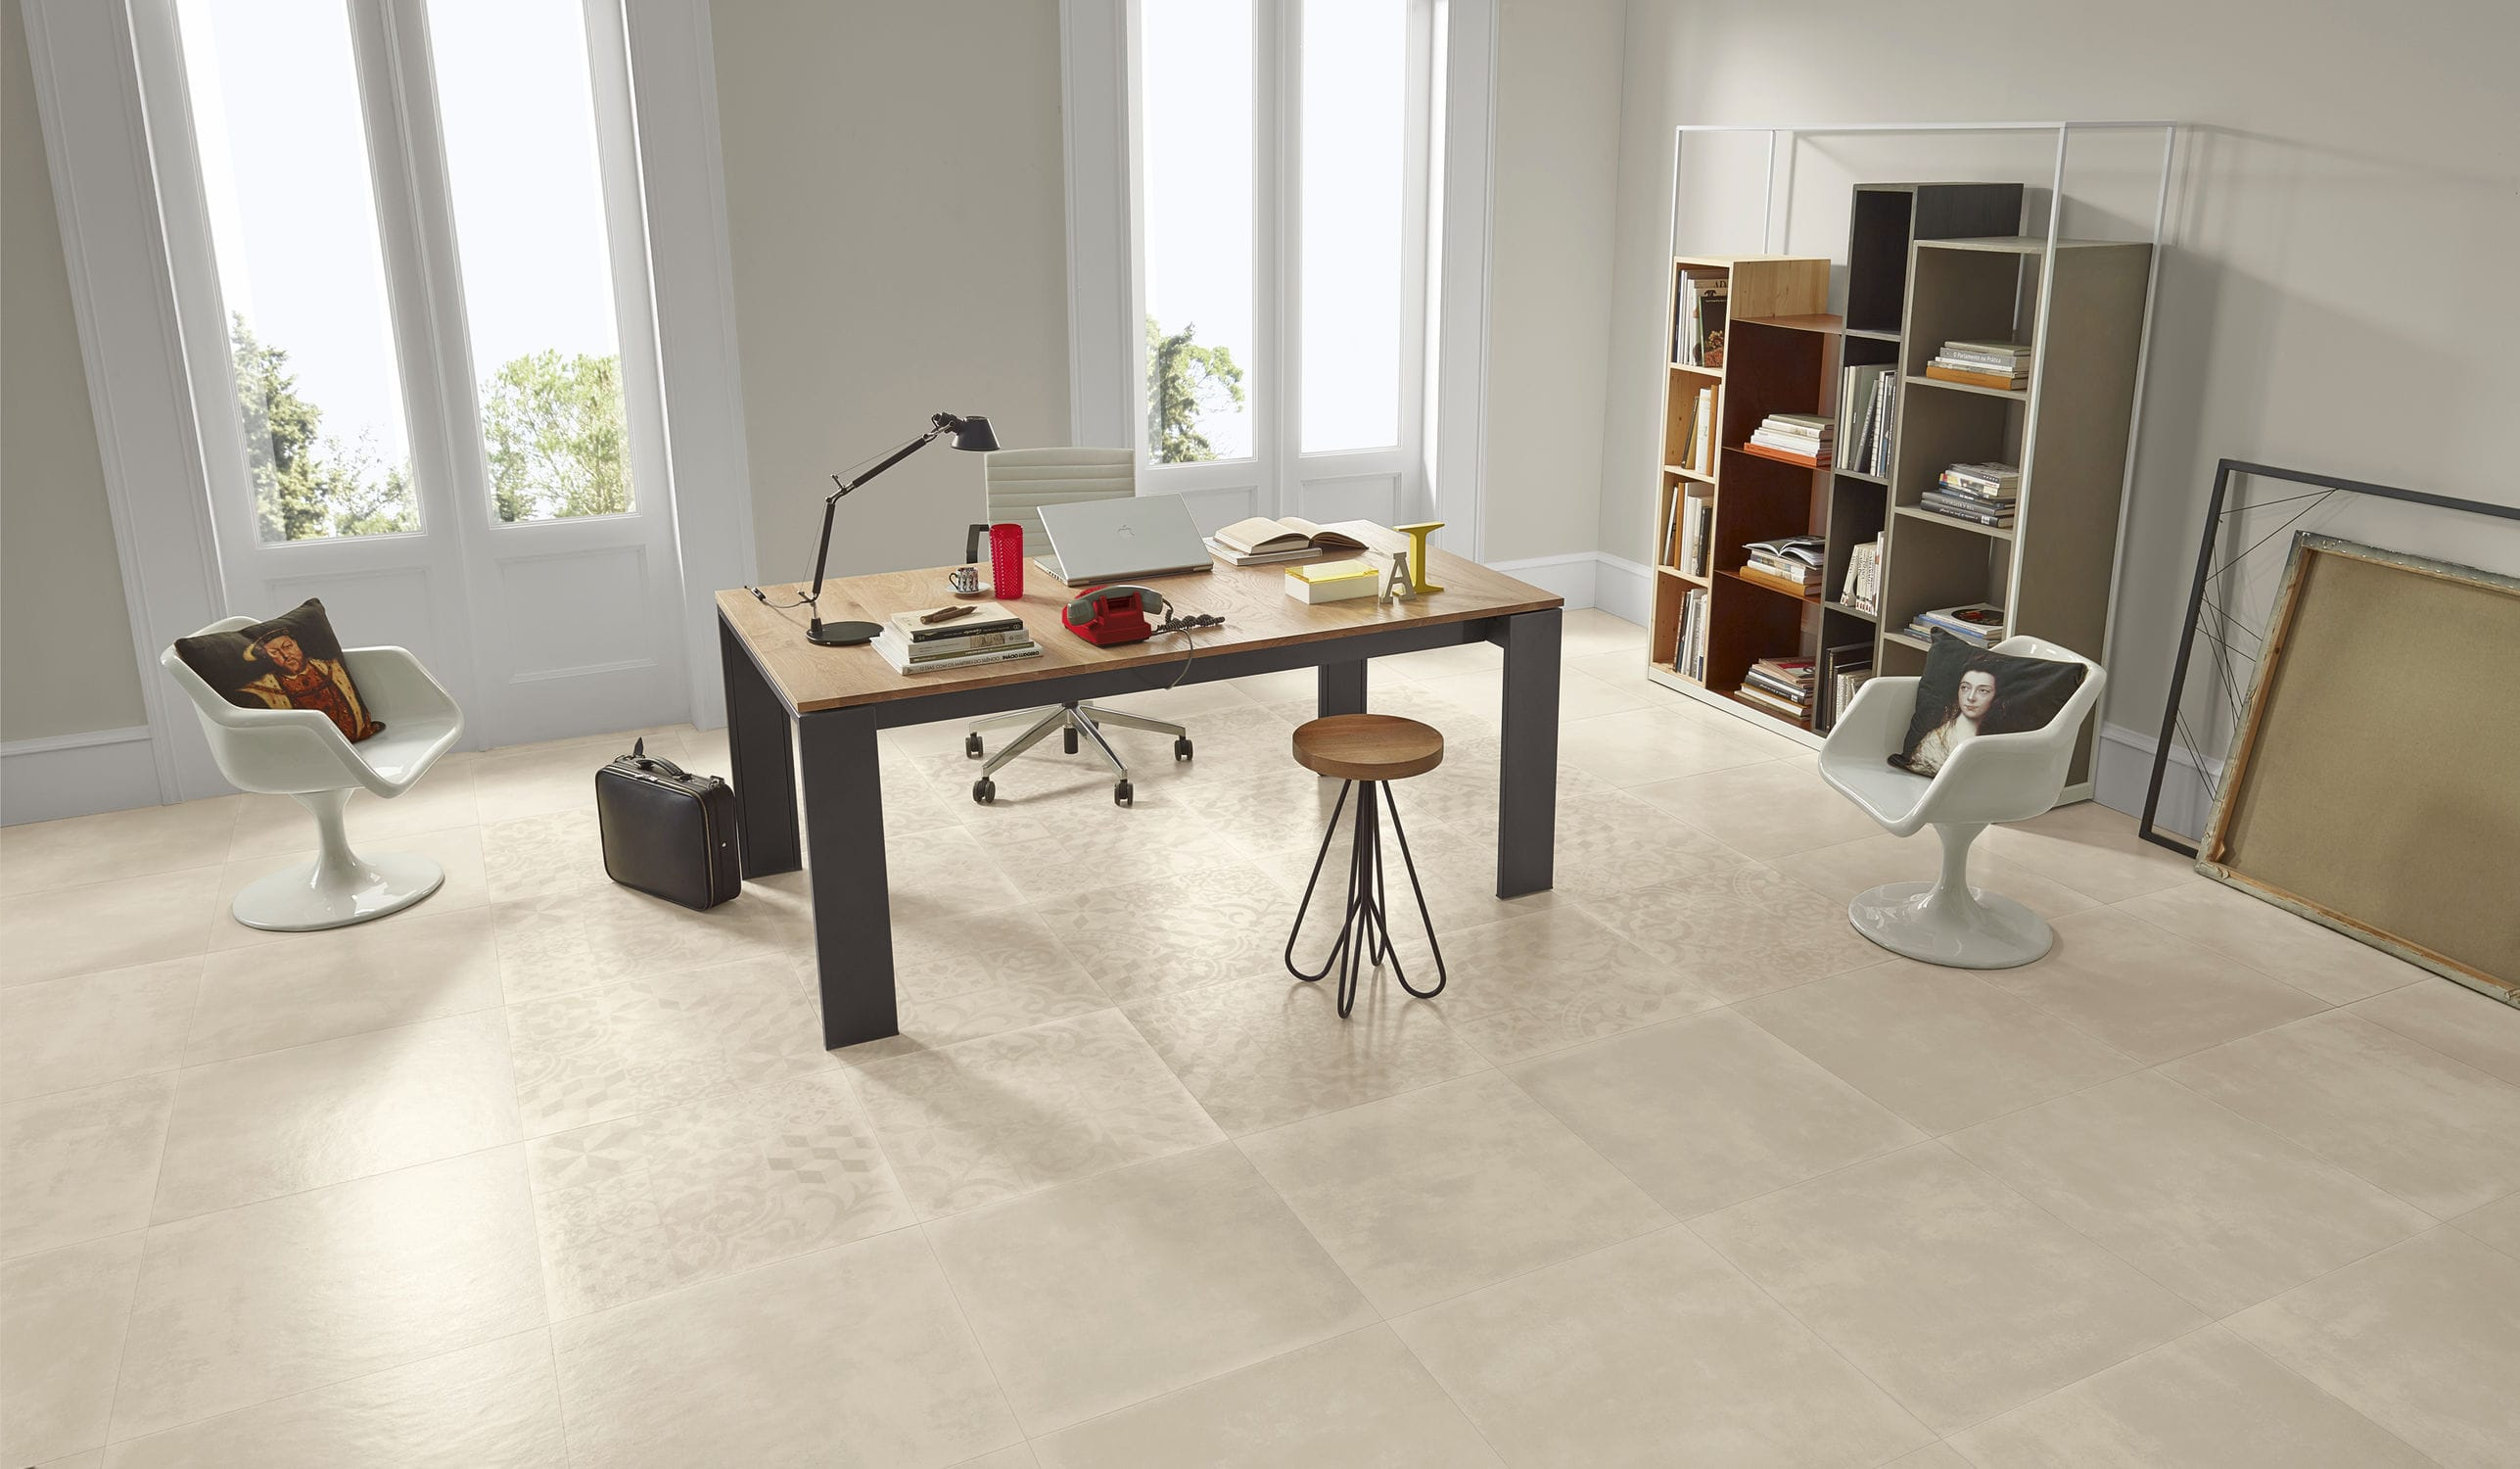 carrelage de sol mural en grs crame satin ground love ceramic tiles - Ceramic Carrelage